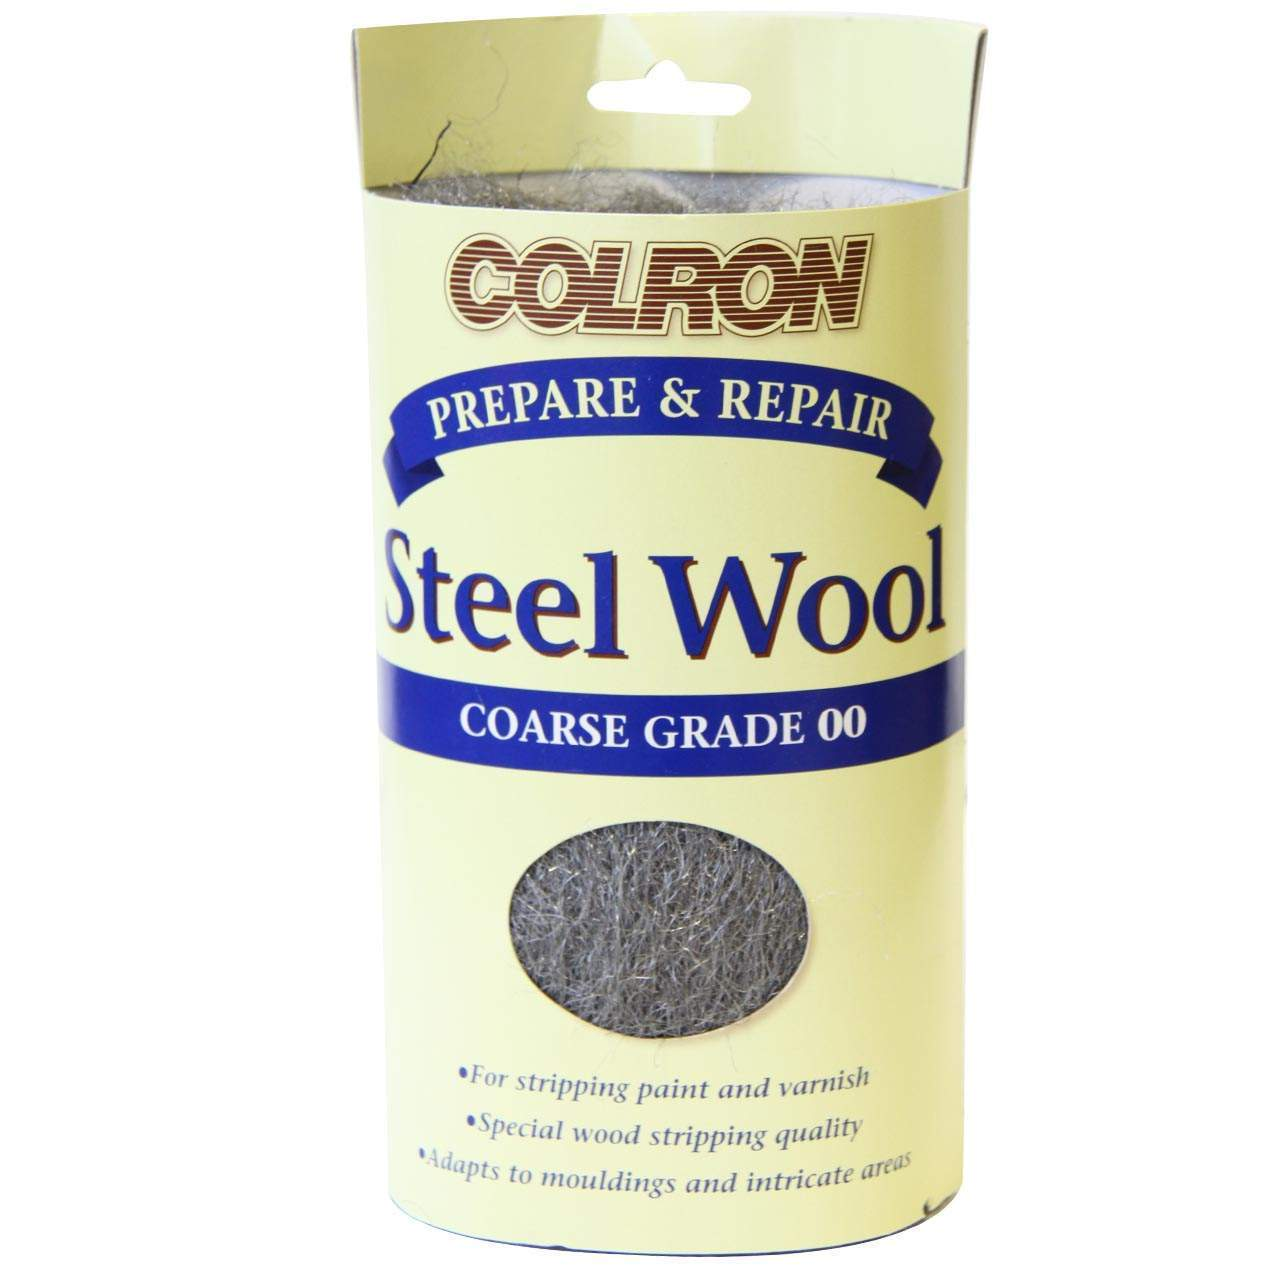 Colron Steel Wool 150g